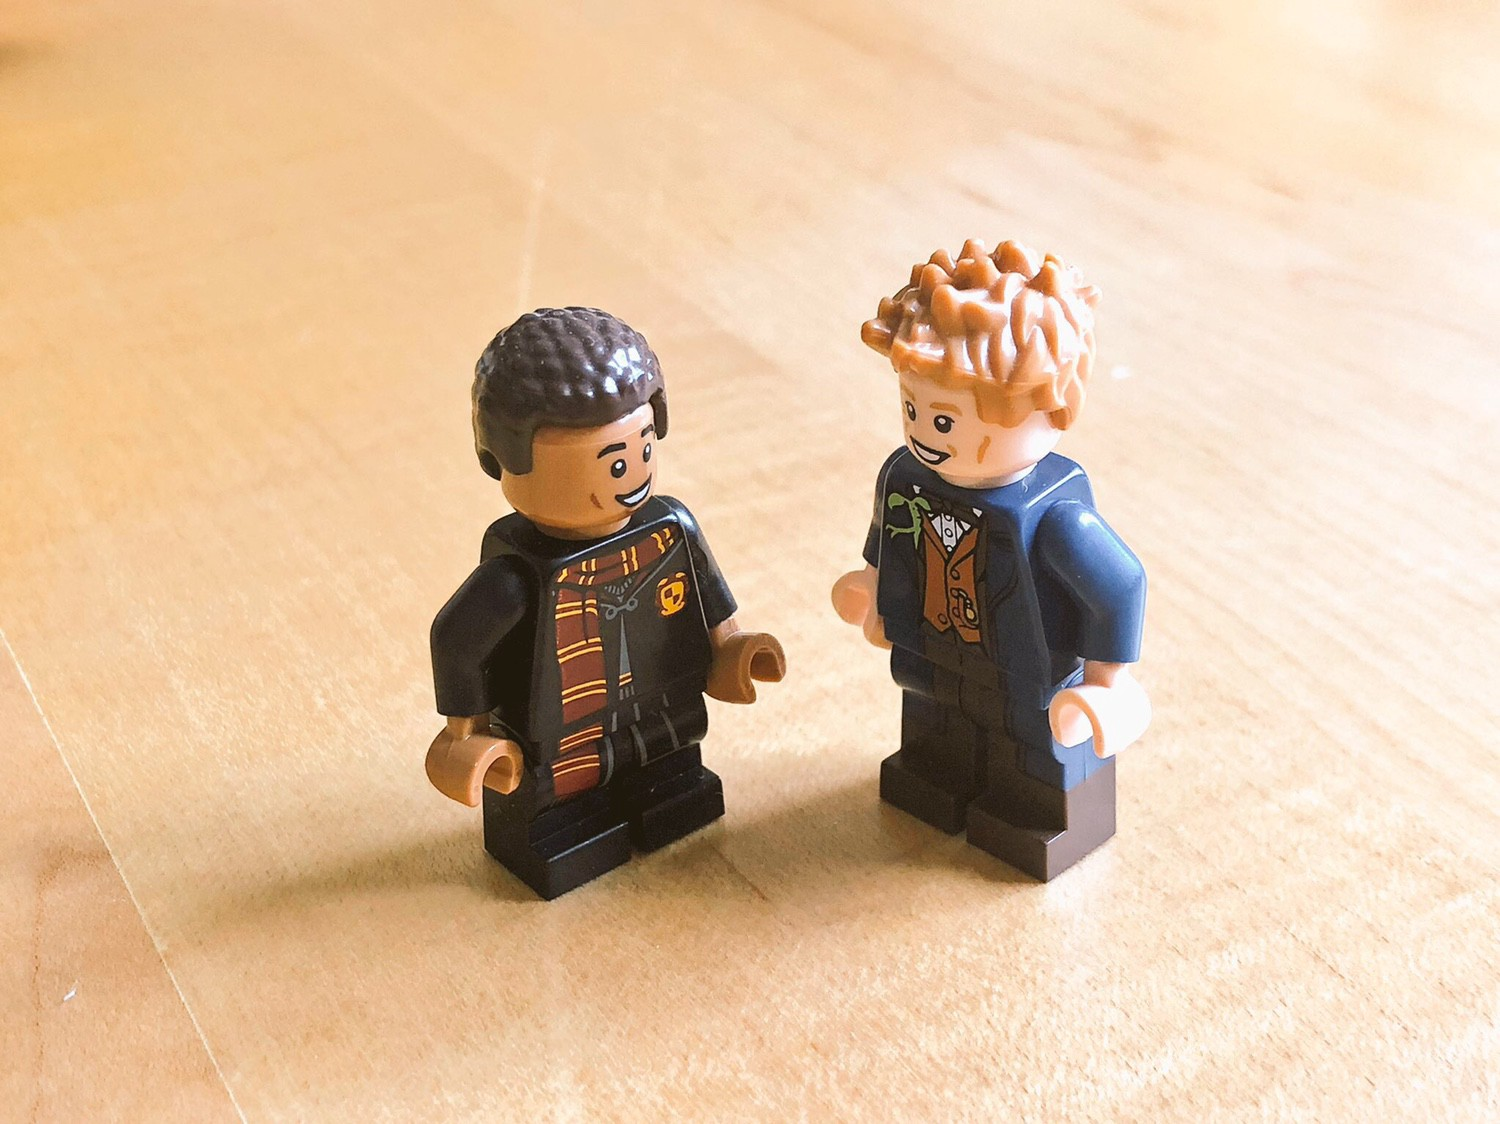 2 Harry Potter Lego minifigs next to each other